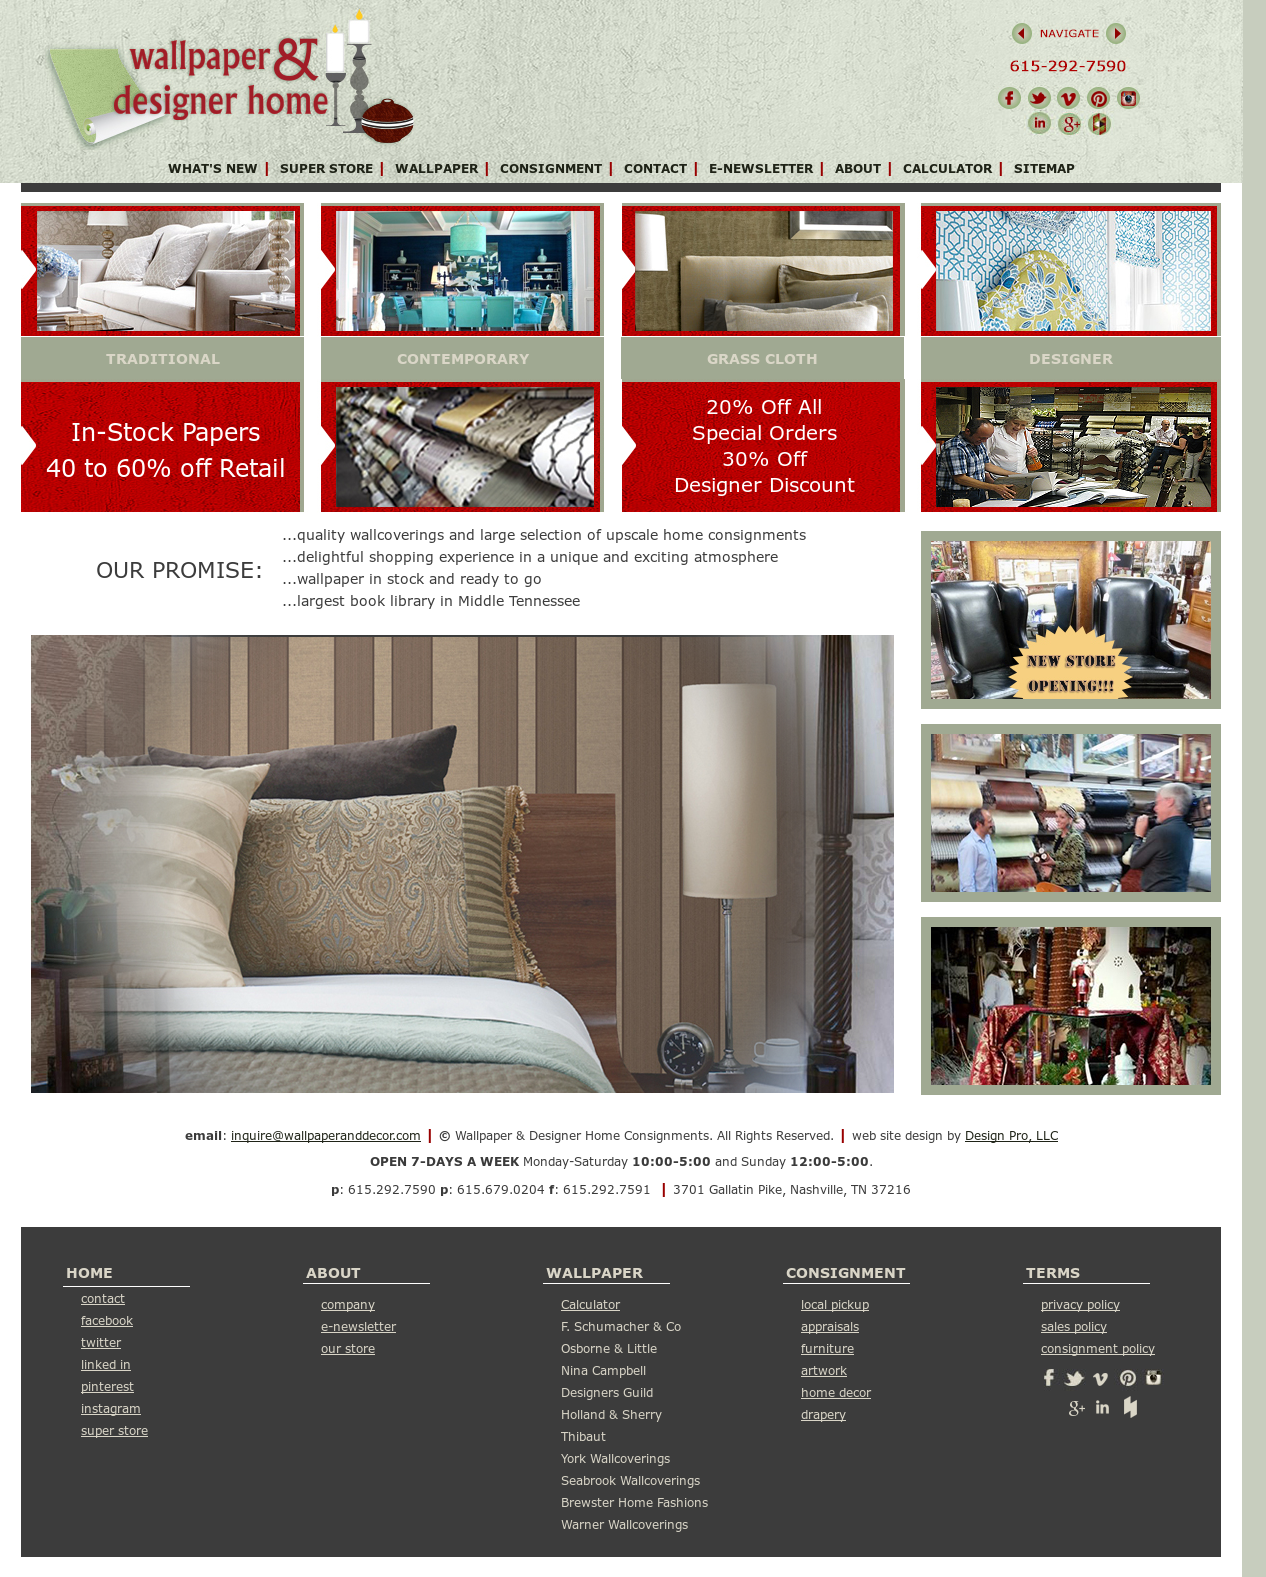 Wallpaper And Designer Home Competitors, Revenue and Employees - Owler Company Profile